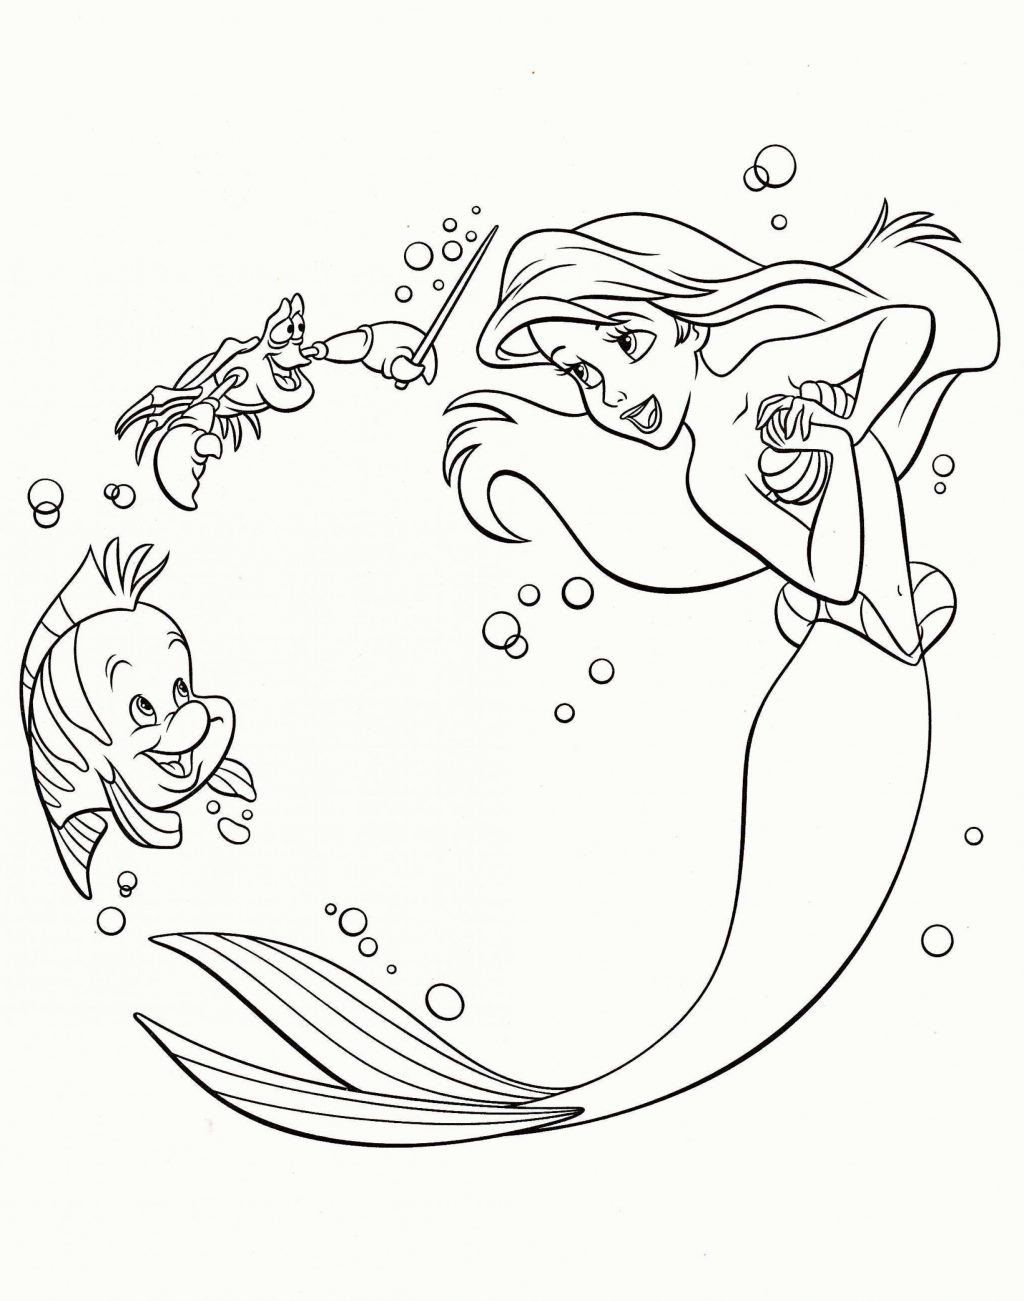 Mermaid Coloring Pages For Adults Luxury Coloring Pages Idea Baby Mermaid Coloring Page Mermaid Coloring Pages Ariel Coloring Pages Mermaid Coloring Book